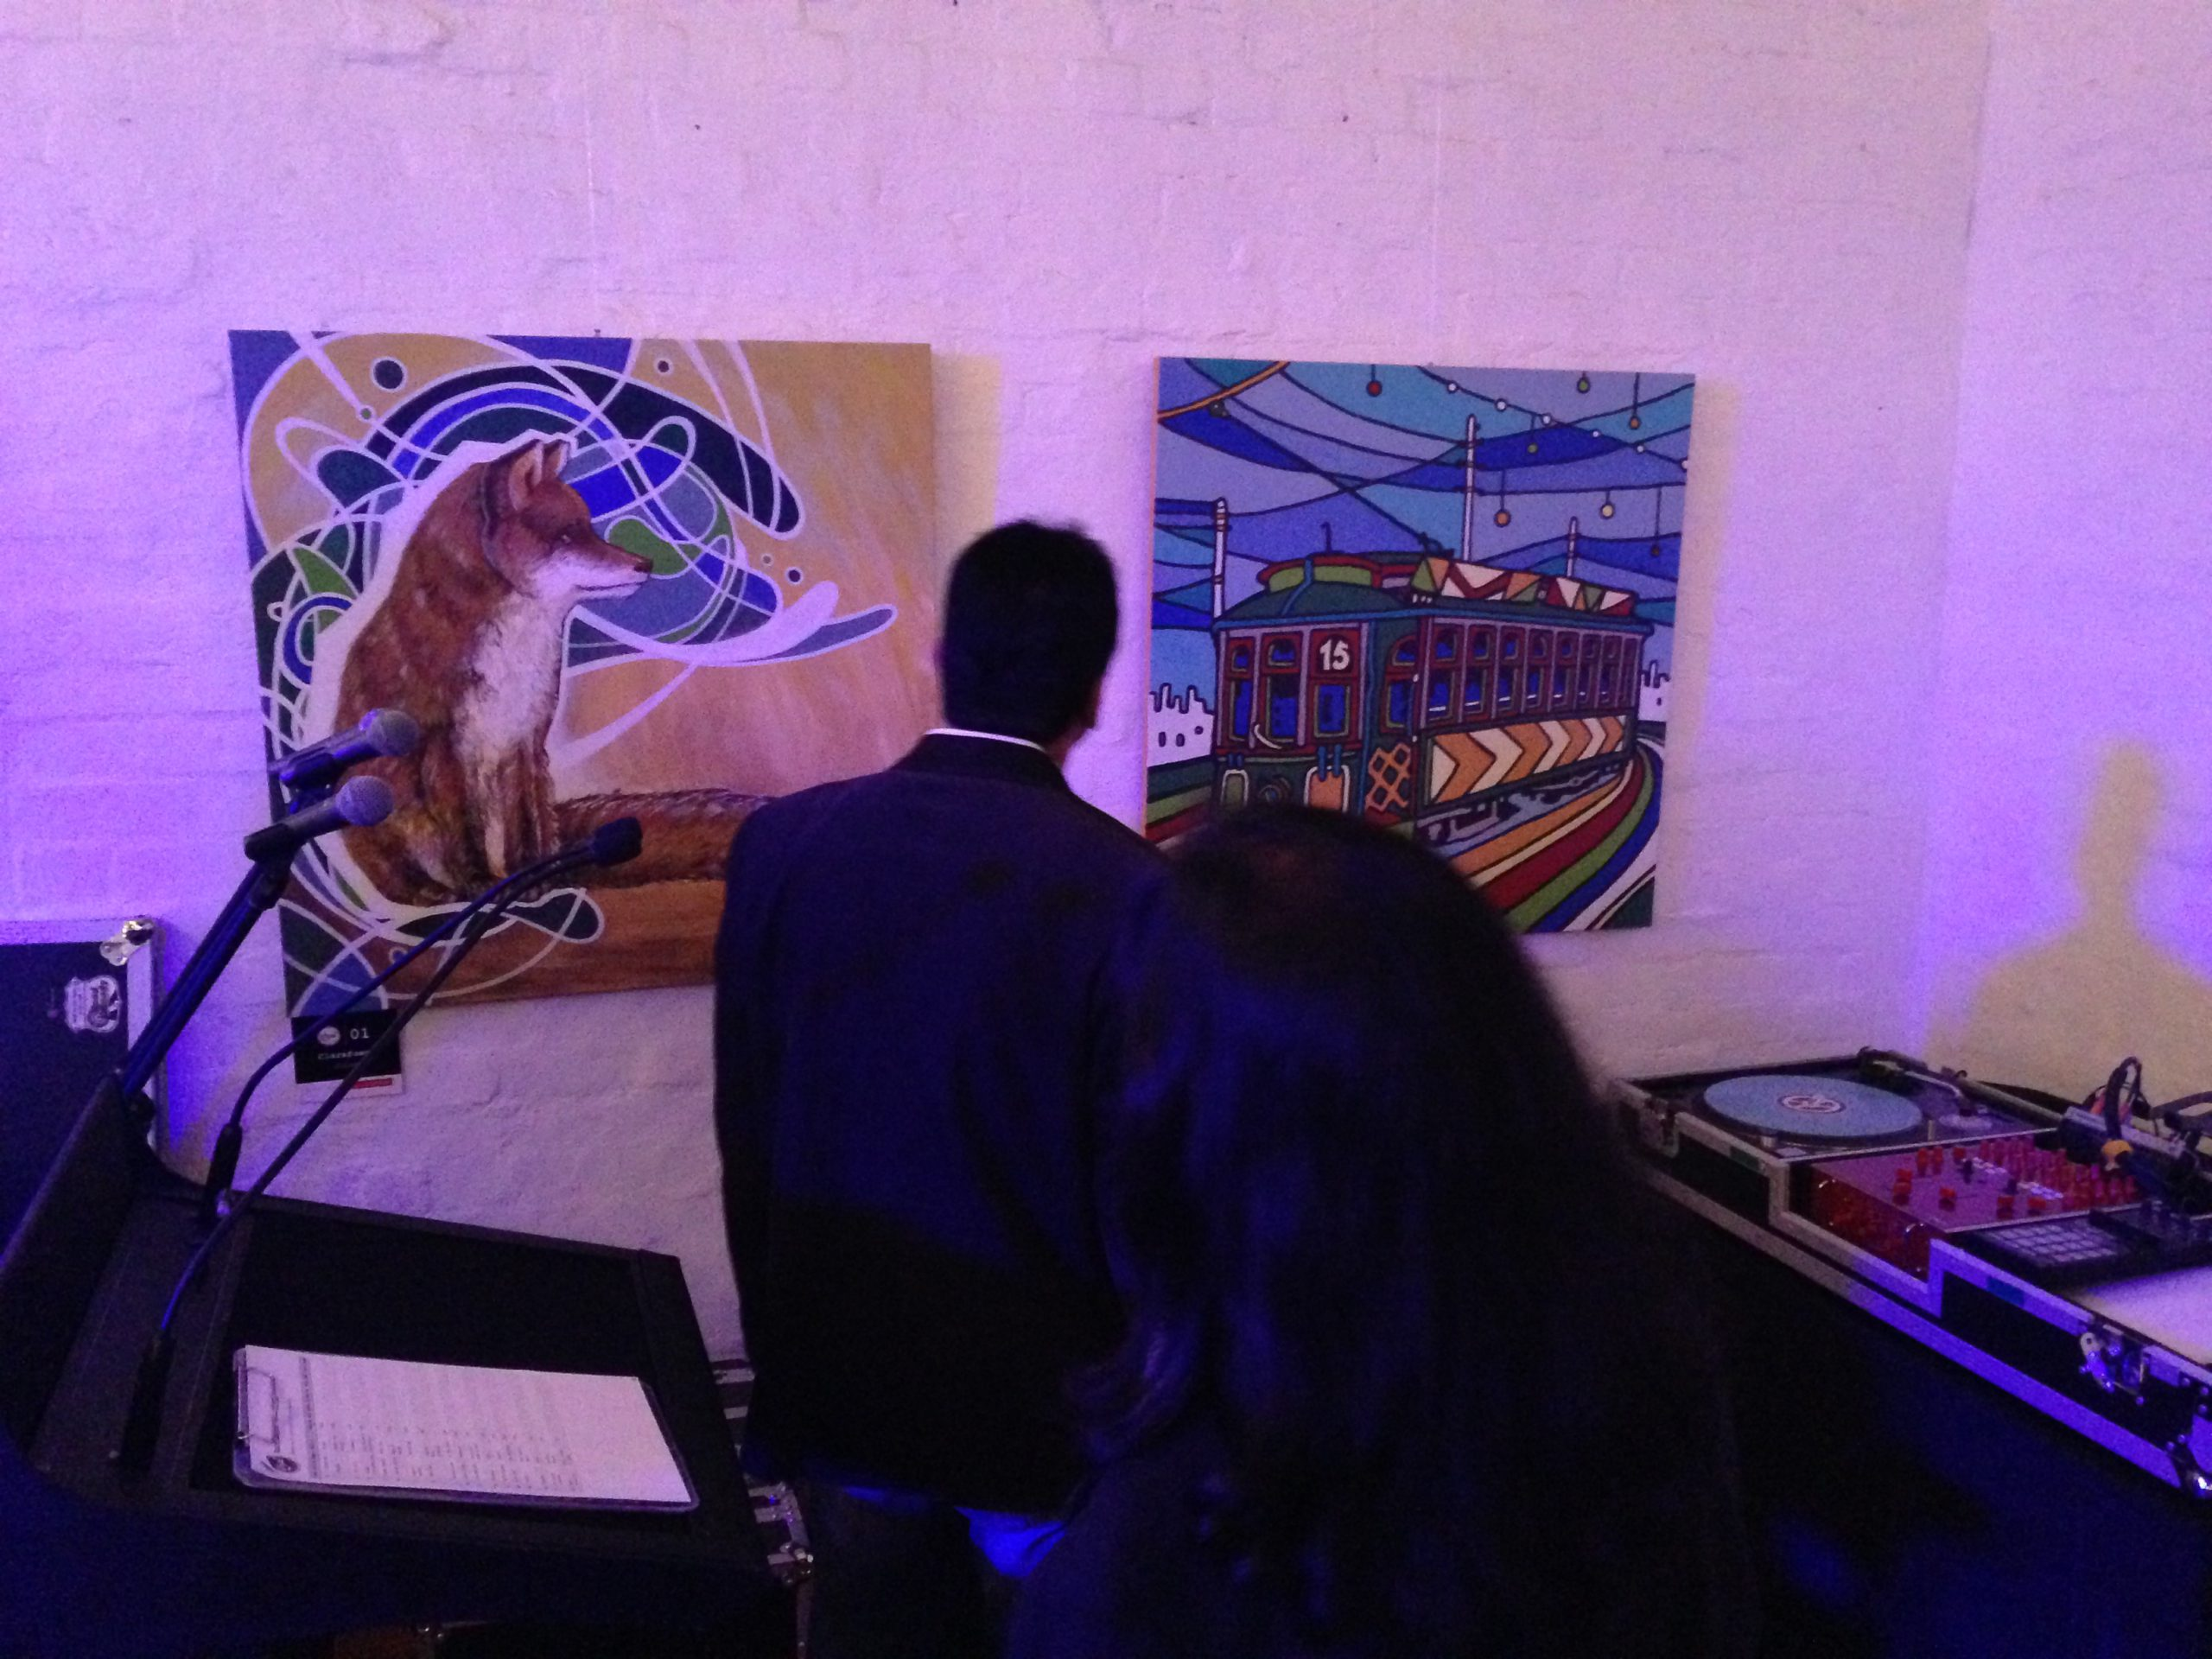 take a seat exhibition art event perth, clarafosca painting fox